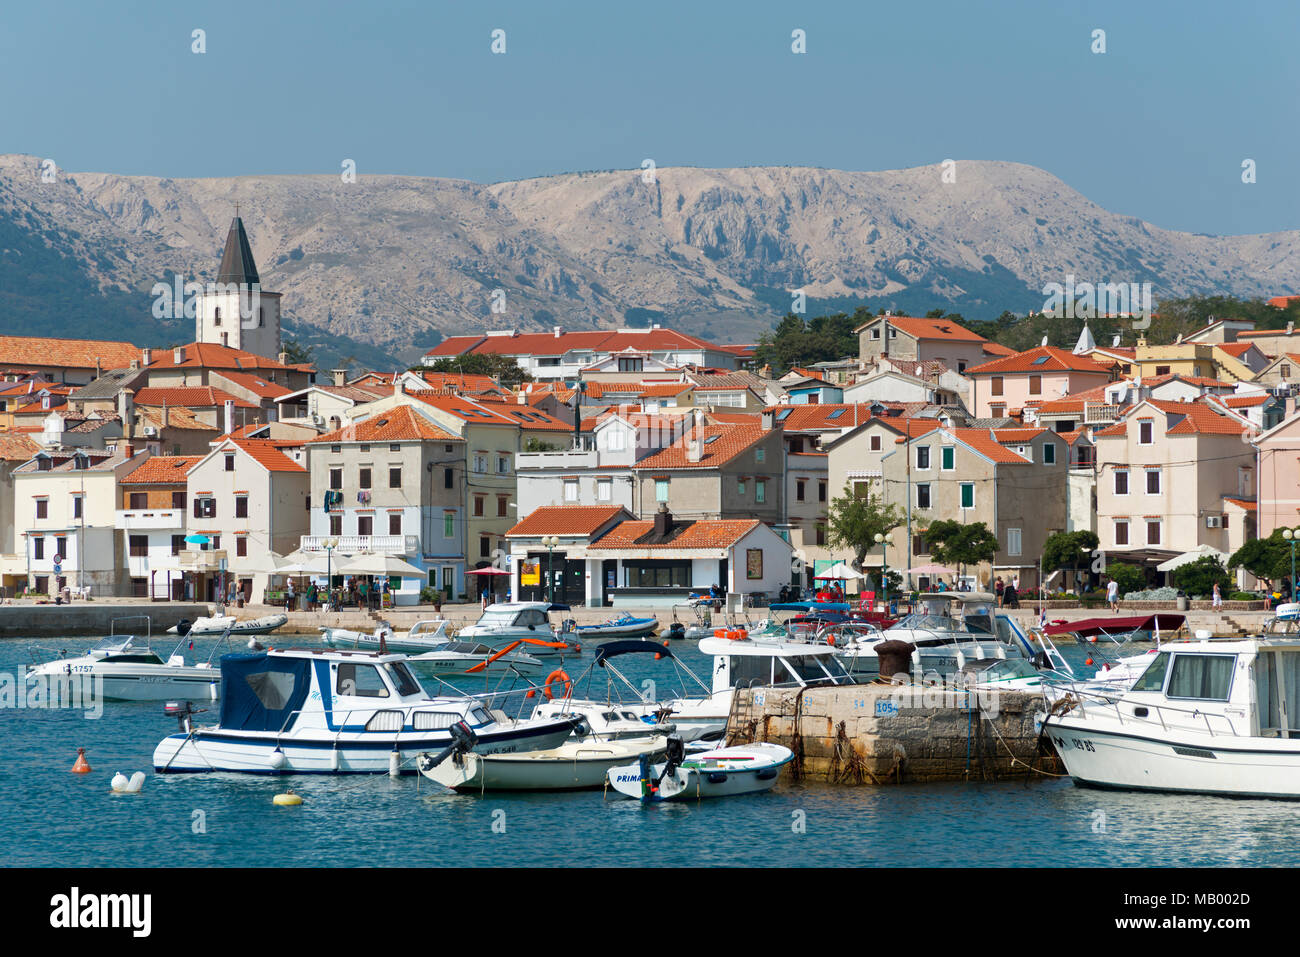 Port, Baska, Island Krk, Kvarner Gulf Bay, Croatia - Stock Image